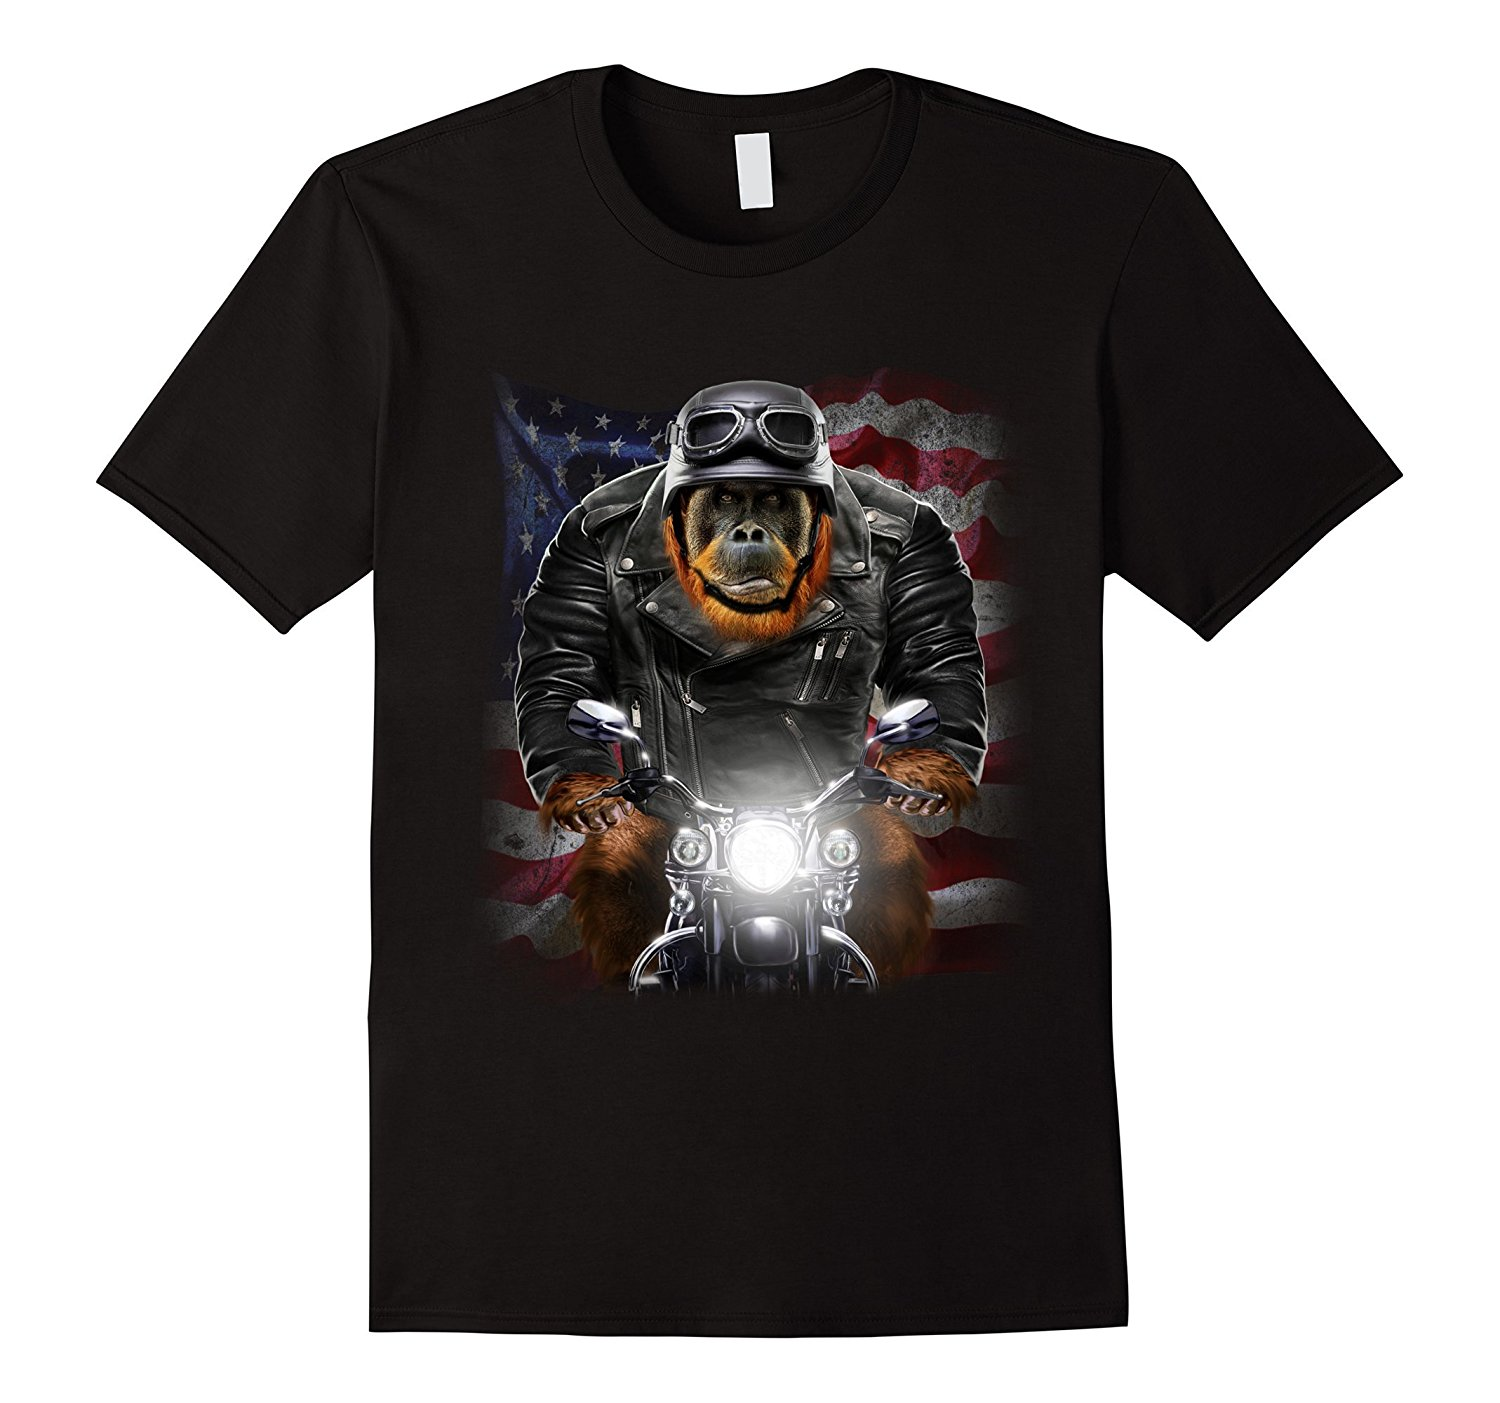 2018 Hot Sale 100% cotton USA Patriot Orangutan Biker Ape Ride Motorcycle T-Shirt Tee sh ...